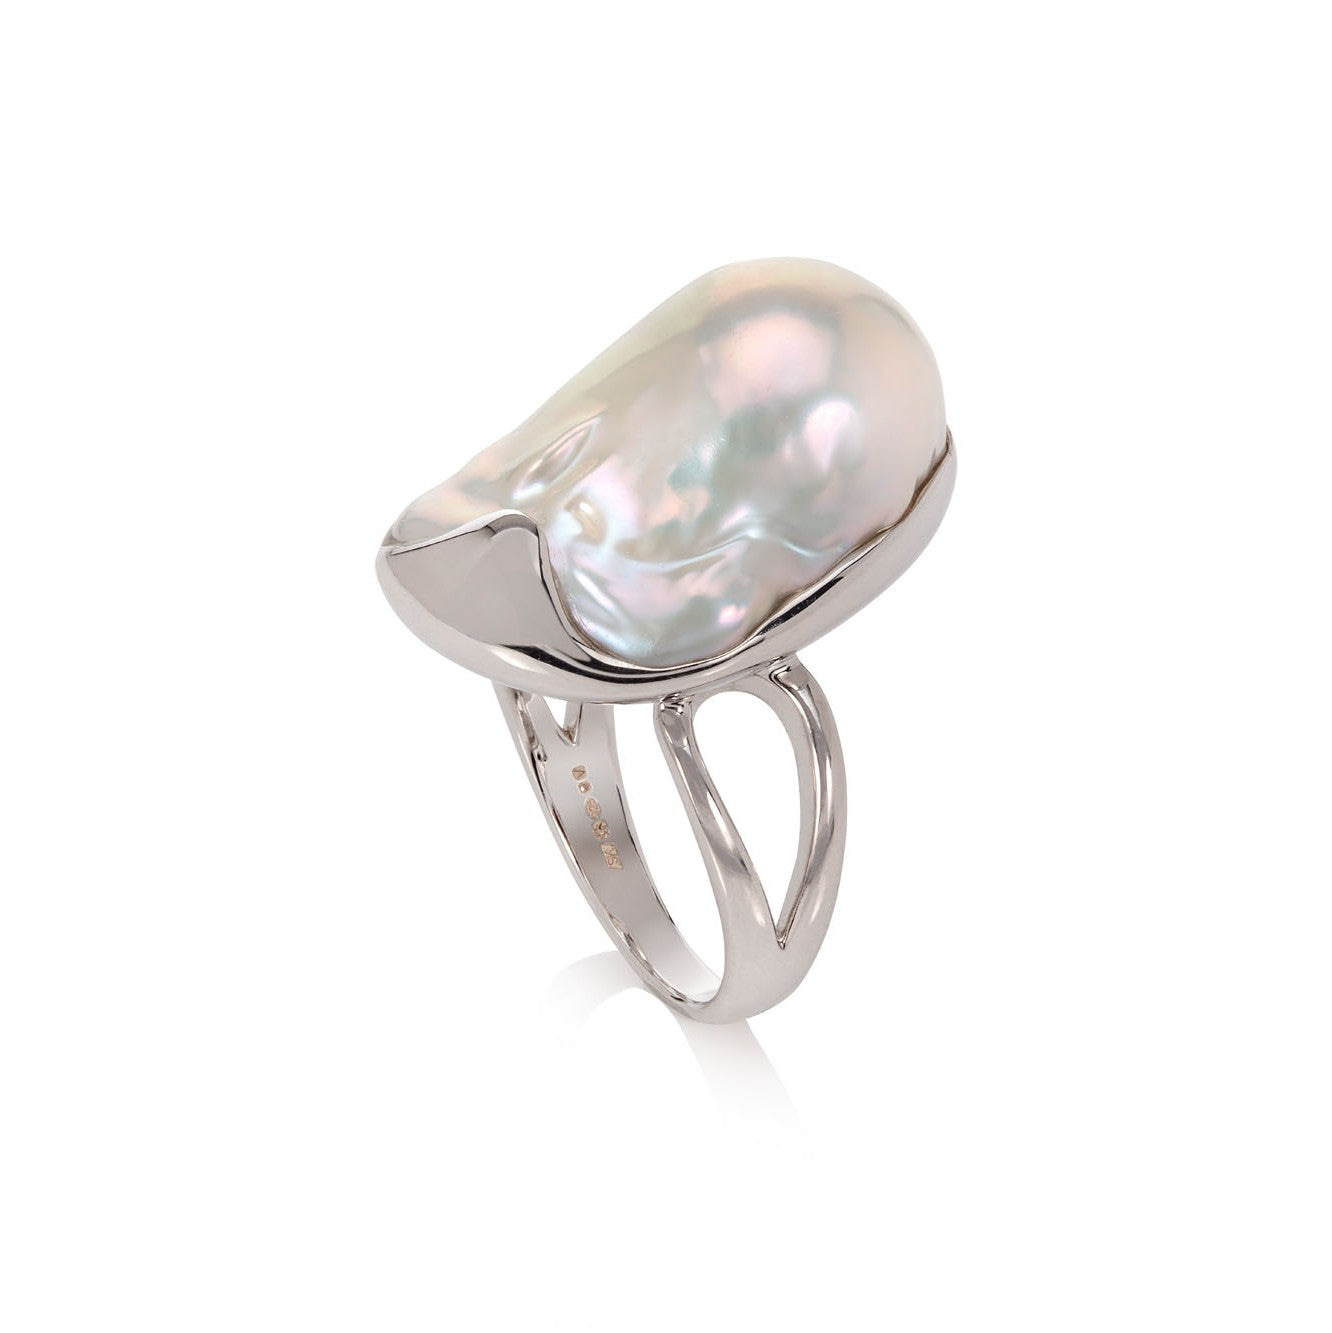 Unusual Baroque Pearl in Sterling Silver by Sabine Konig